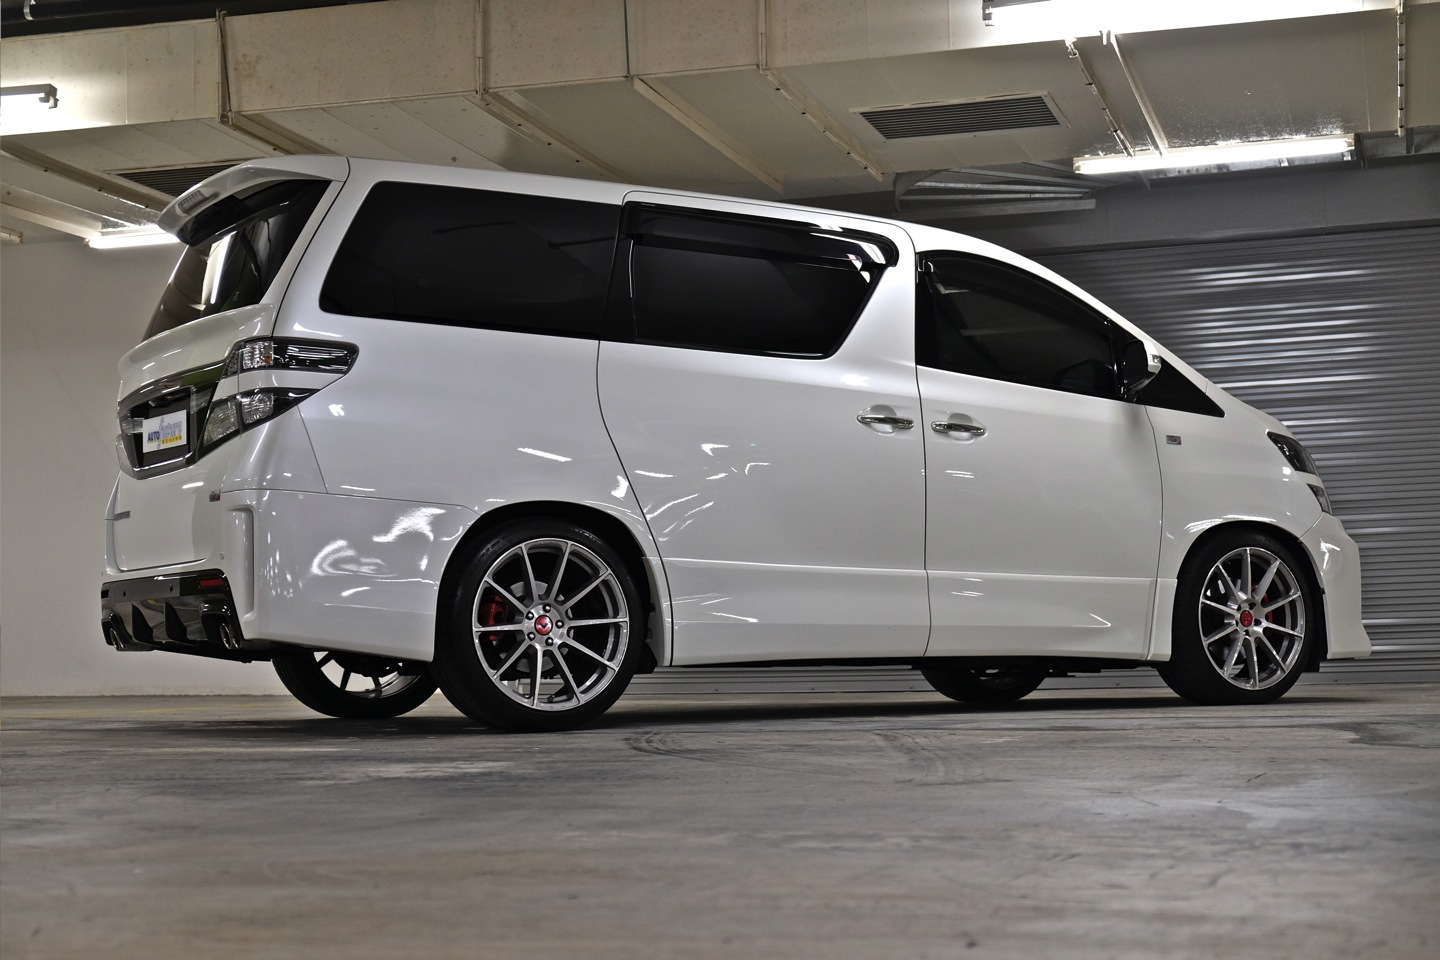 Toyota Vellfire Equipped With Vorsteiner V Ff 102 Wheels